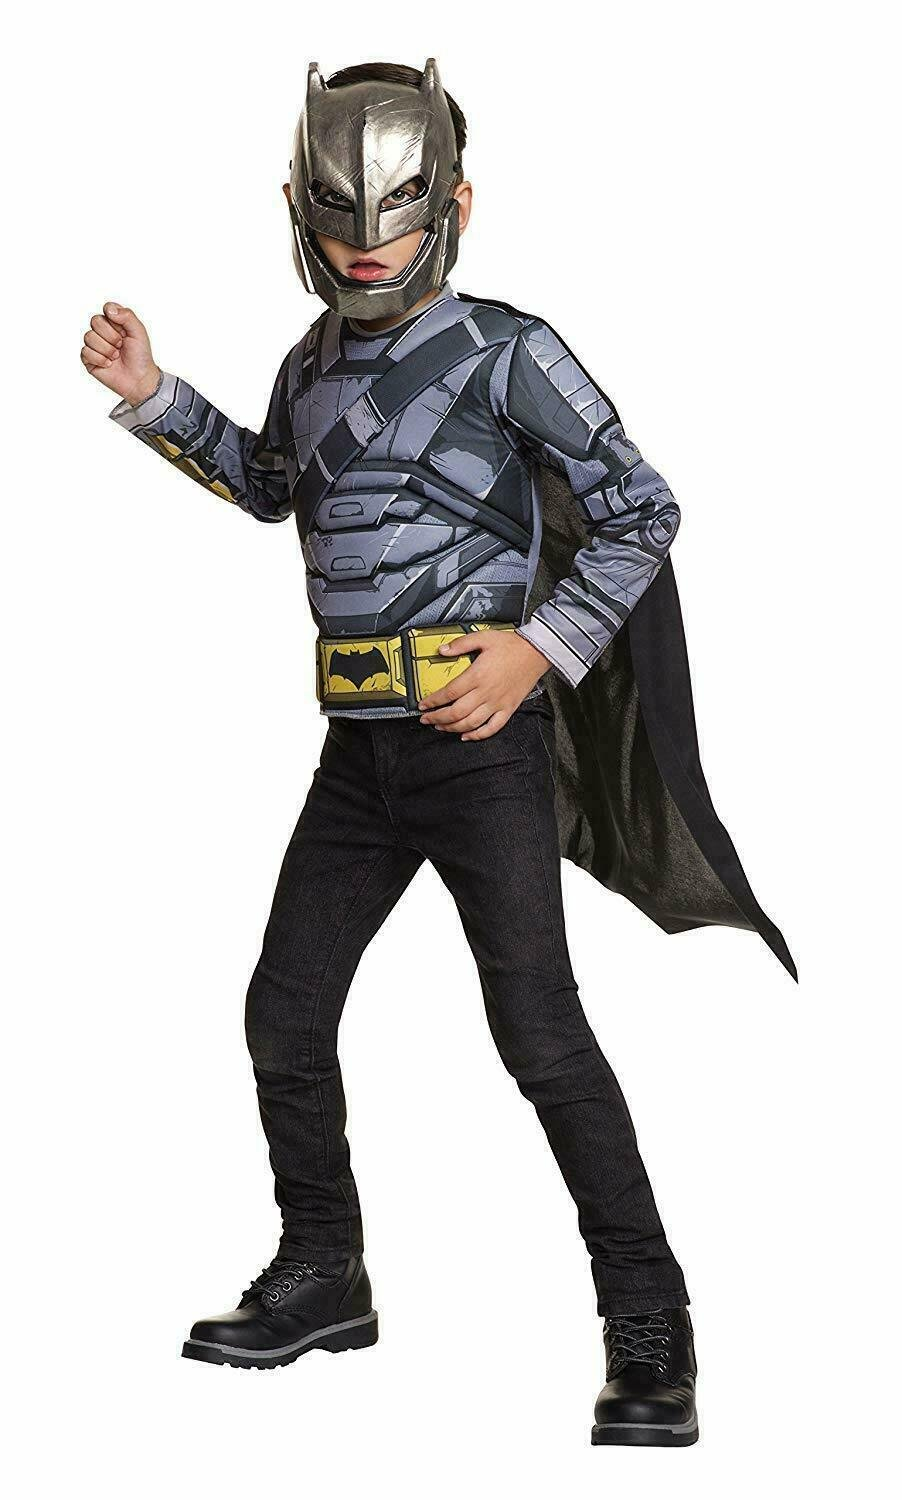 Batman Armored Muscle Chest Shirt & Mask Kid/Child's Dress-Up Costume, Size 4-6